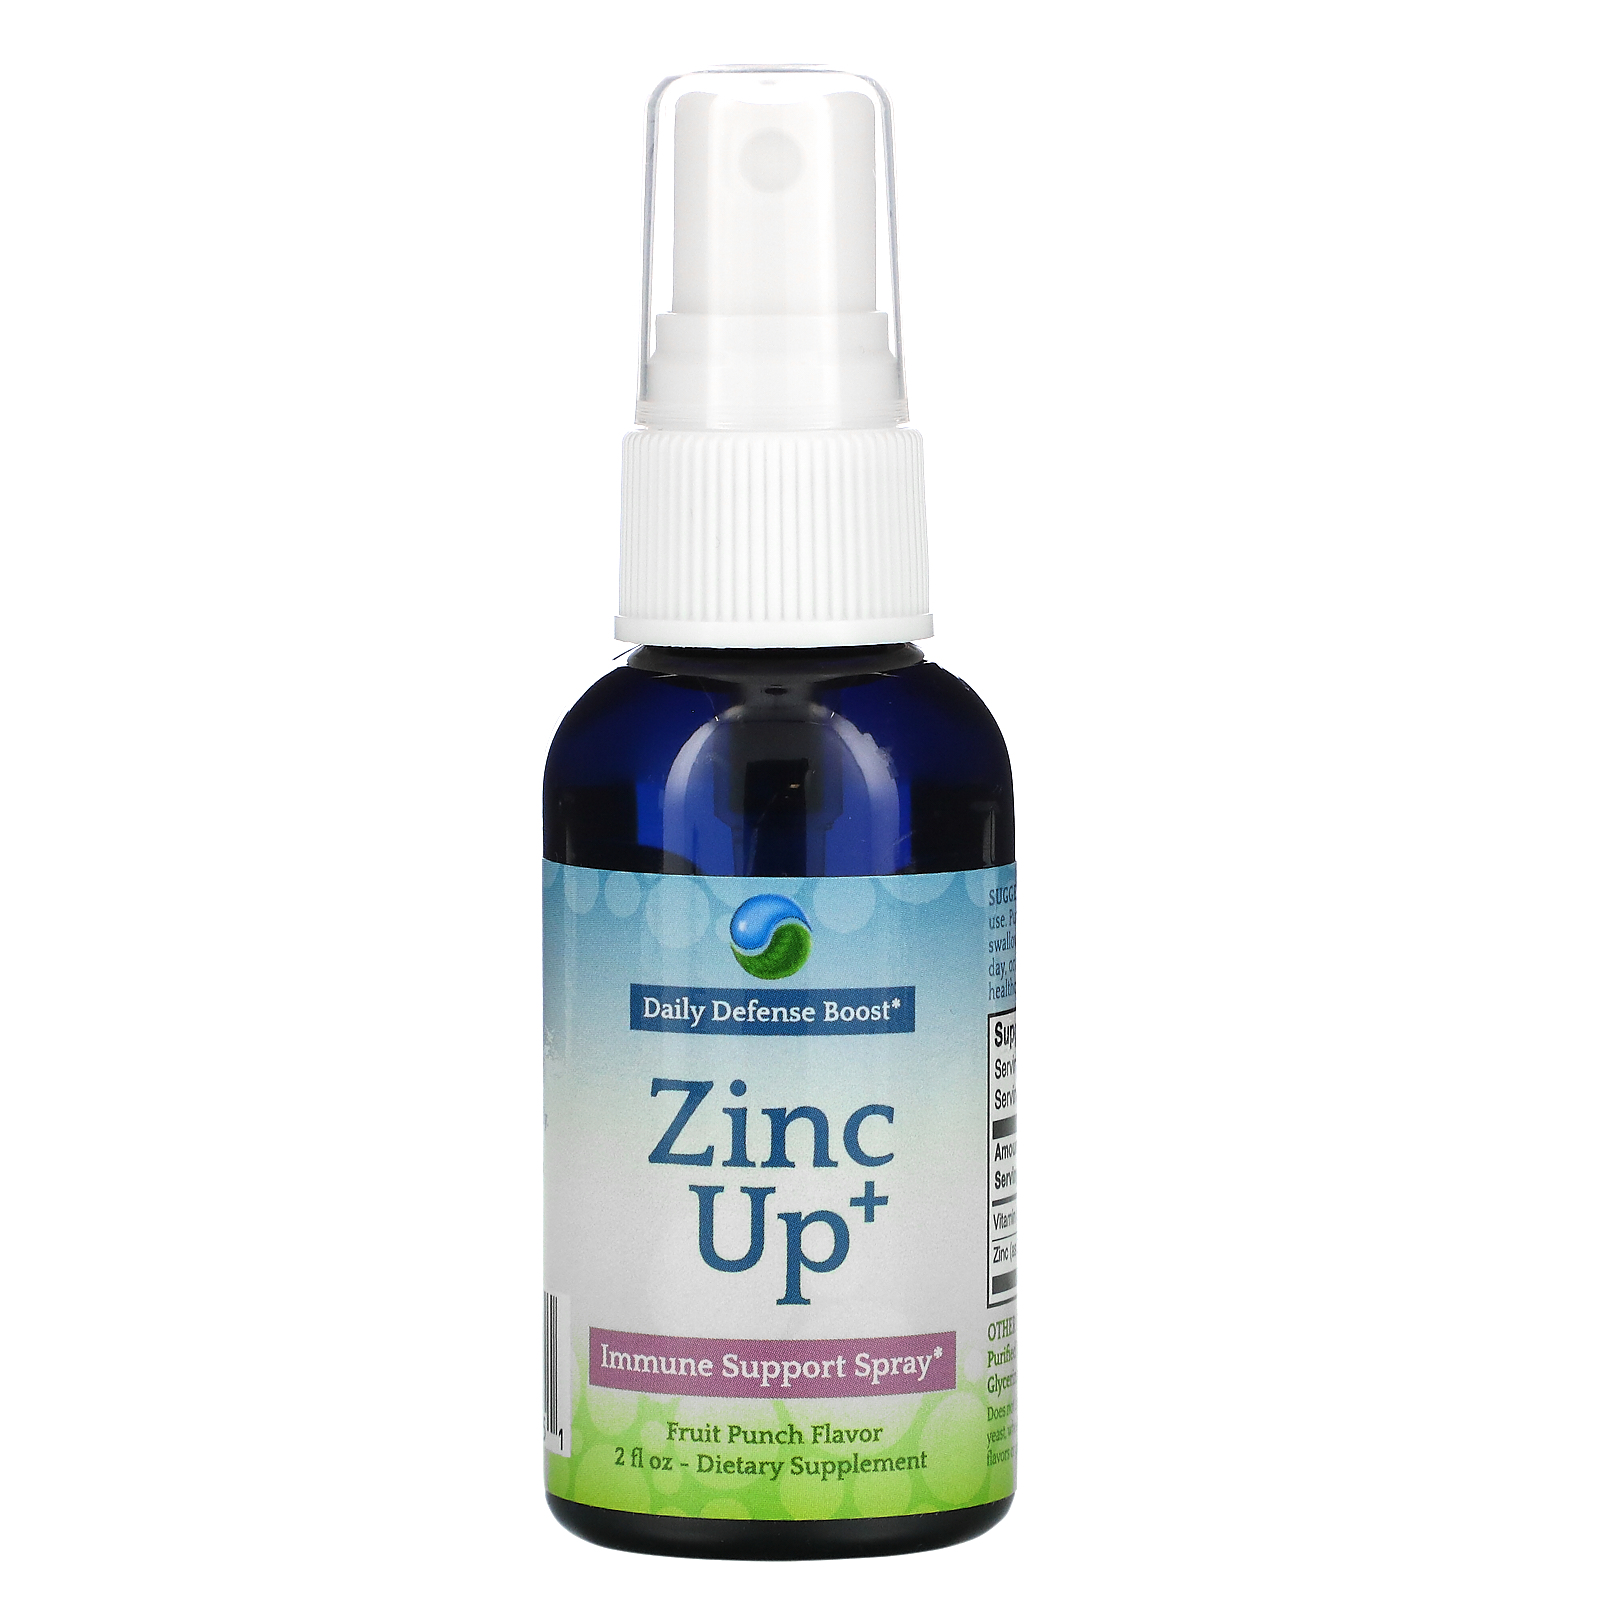 Aerobic Life, Zinc Up+, Immune Support Spray, 2 fl oz